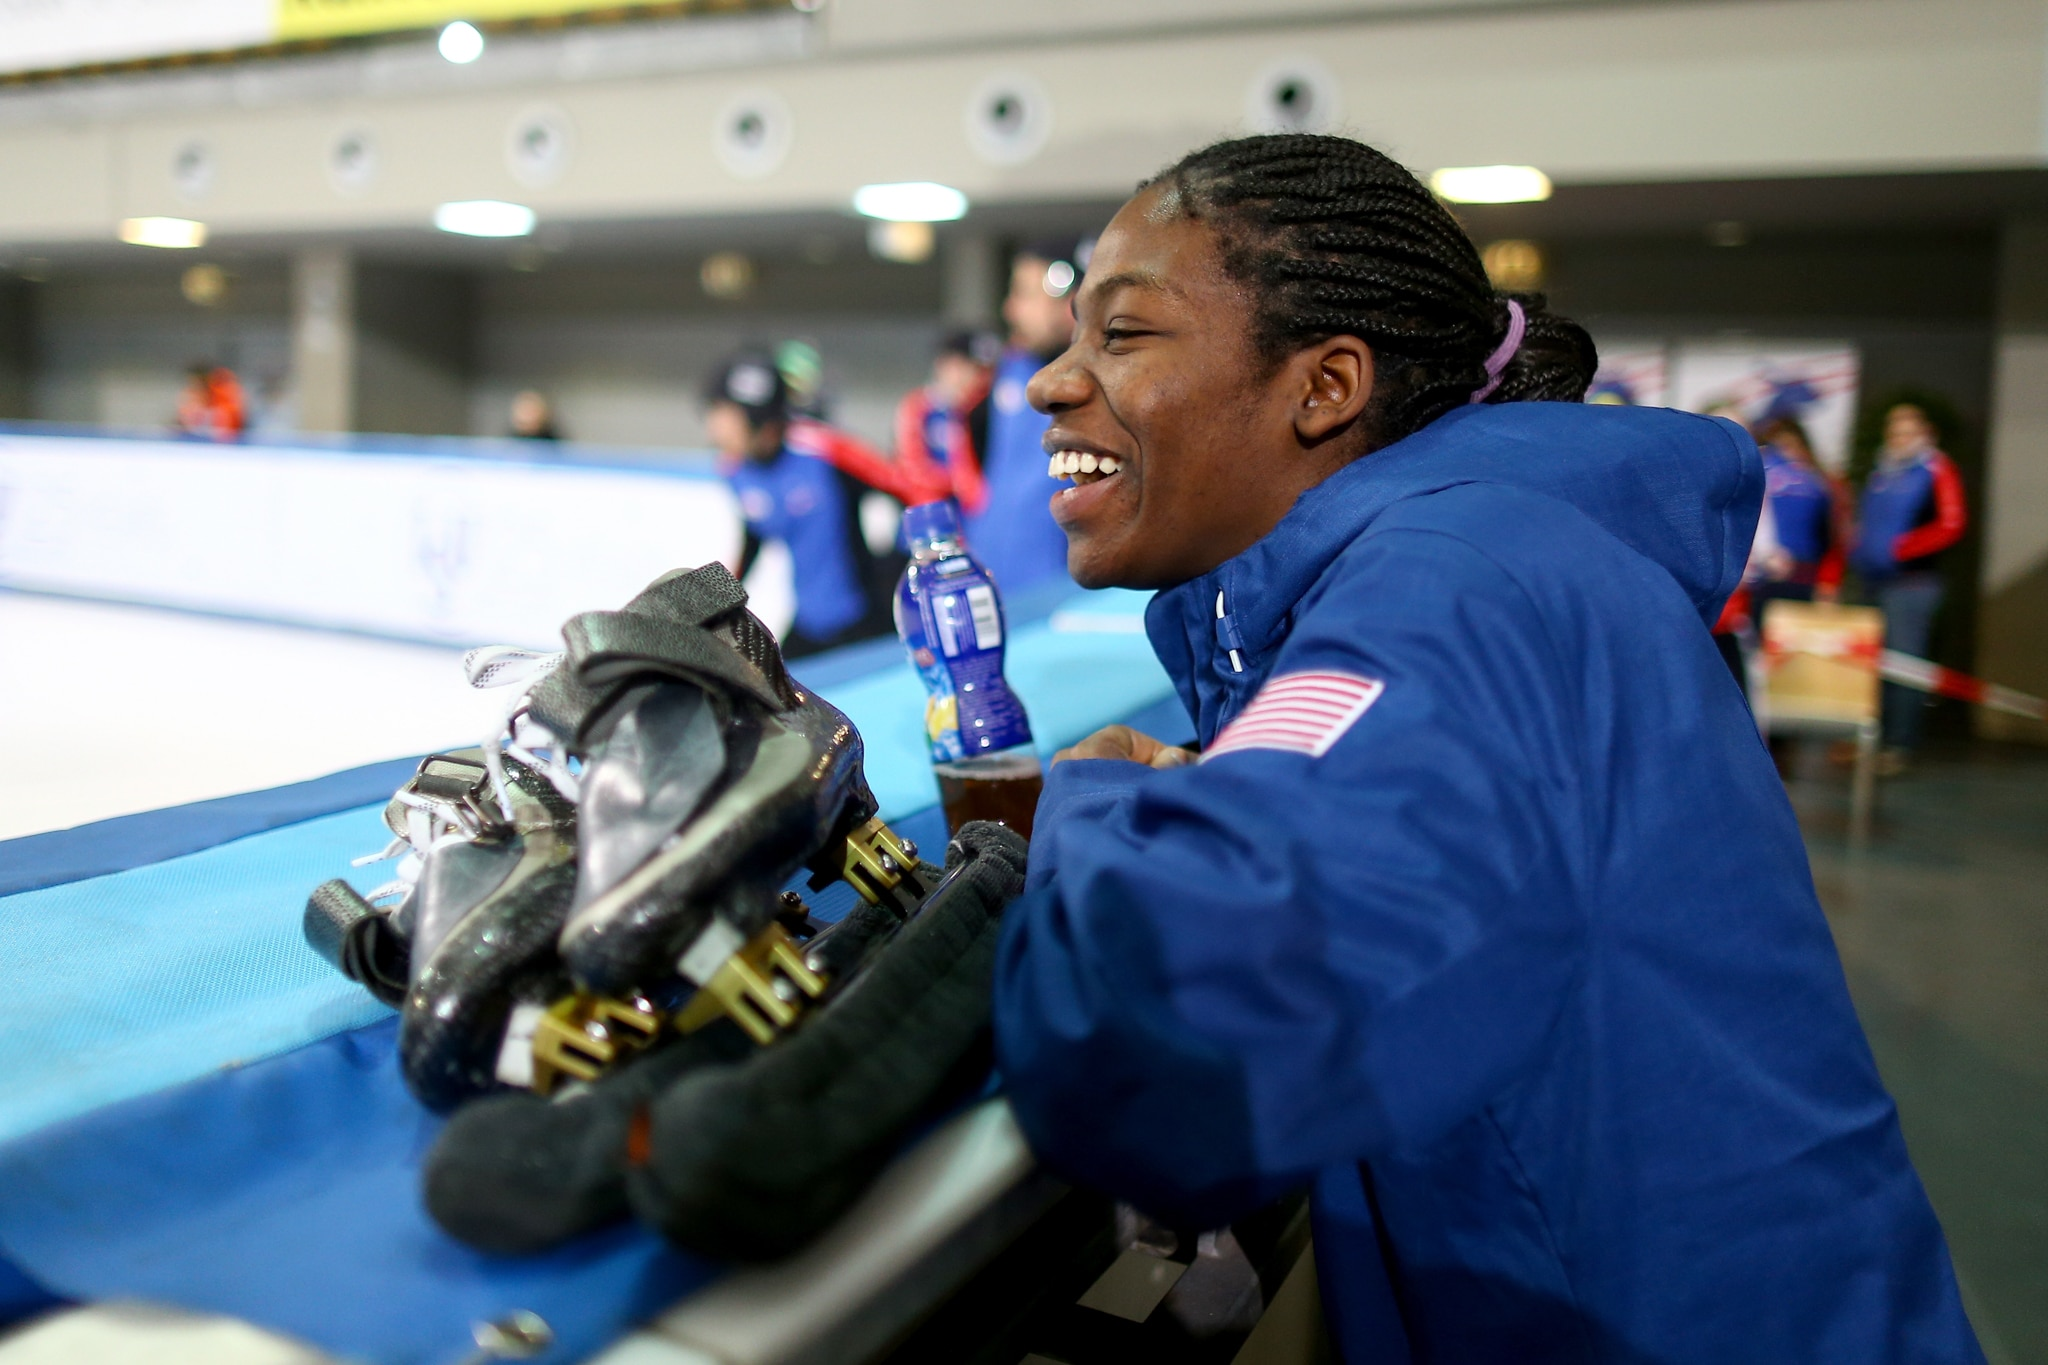 Maame Biney wearing blue coat and standing on sidelines of ice skating rink (© Christof Koepsel/ISU/Getty Images)